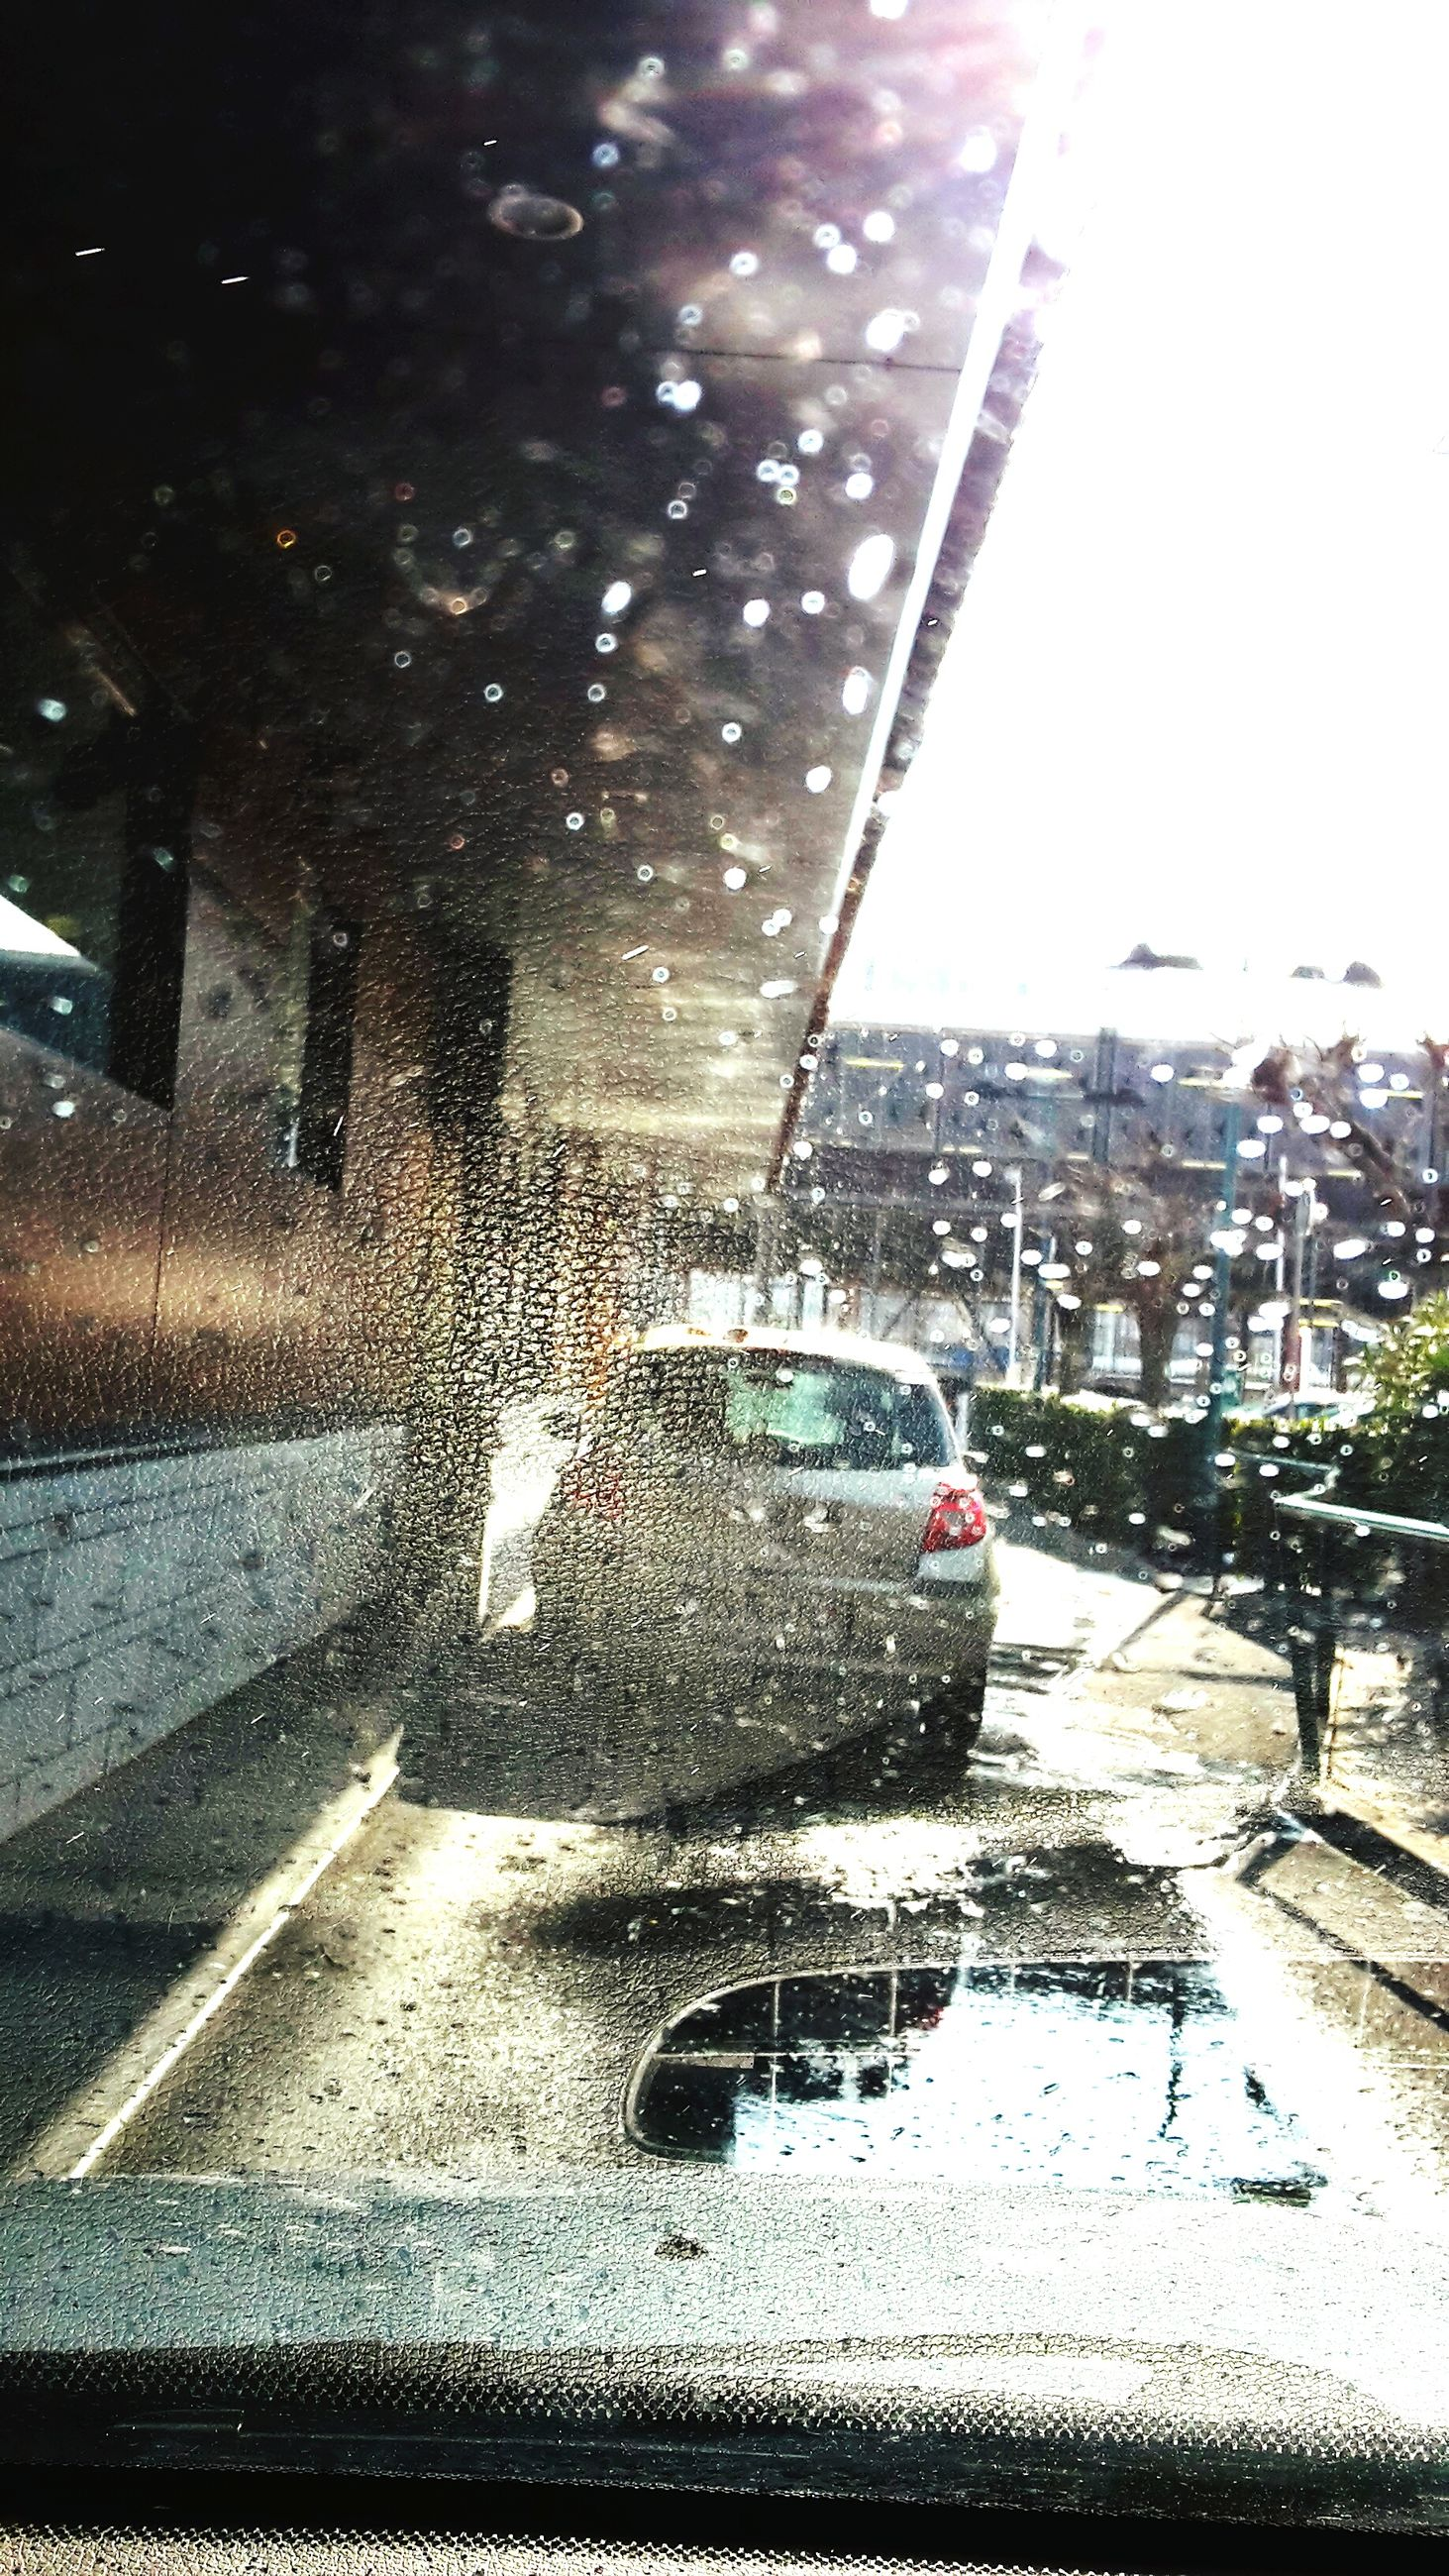 water, wet, transportation, rain, street, car, mode of transport, road, reflection, city, drop, season, glass - material, land vehicle, puddle, building exterior, transparent, motion, on the move, built structure